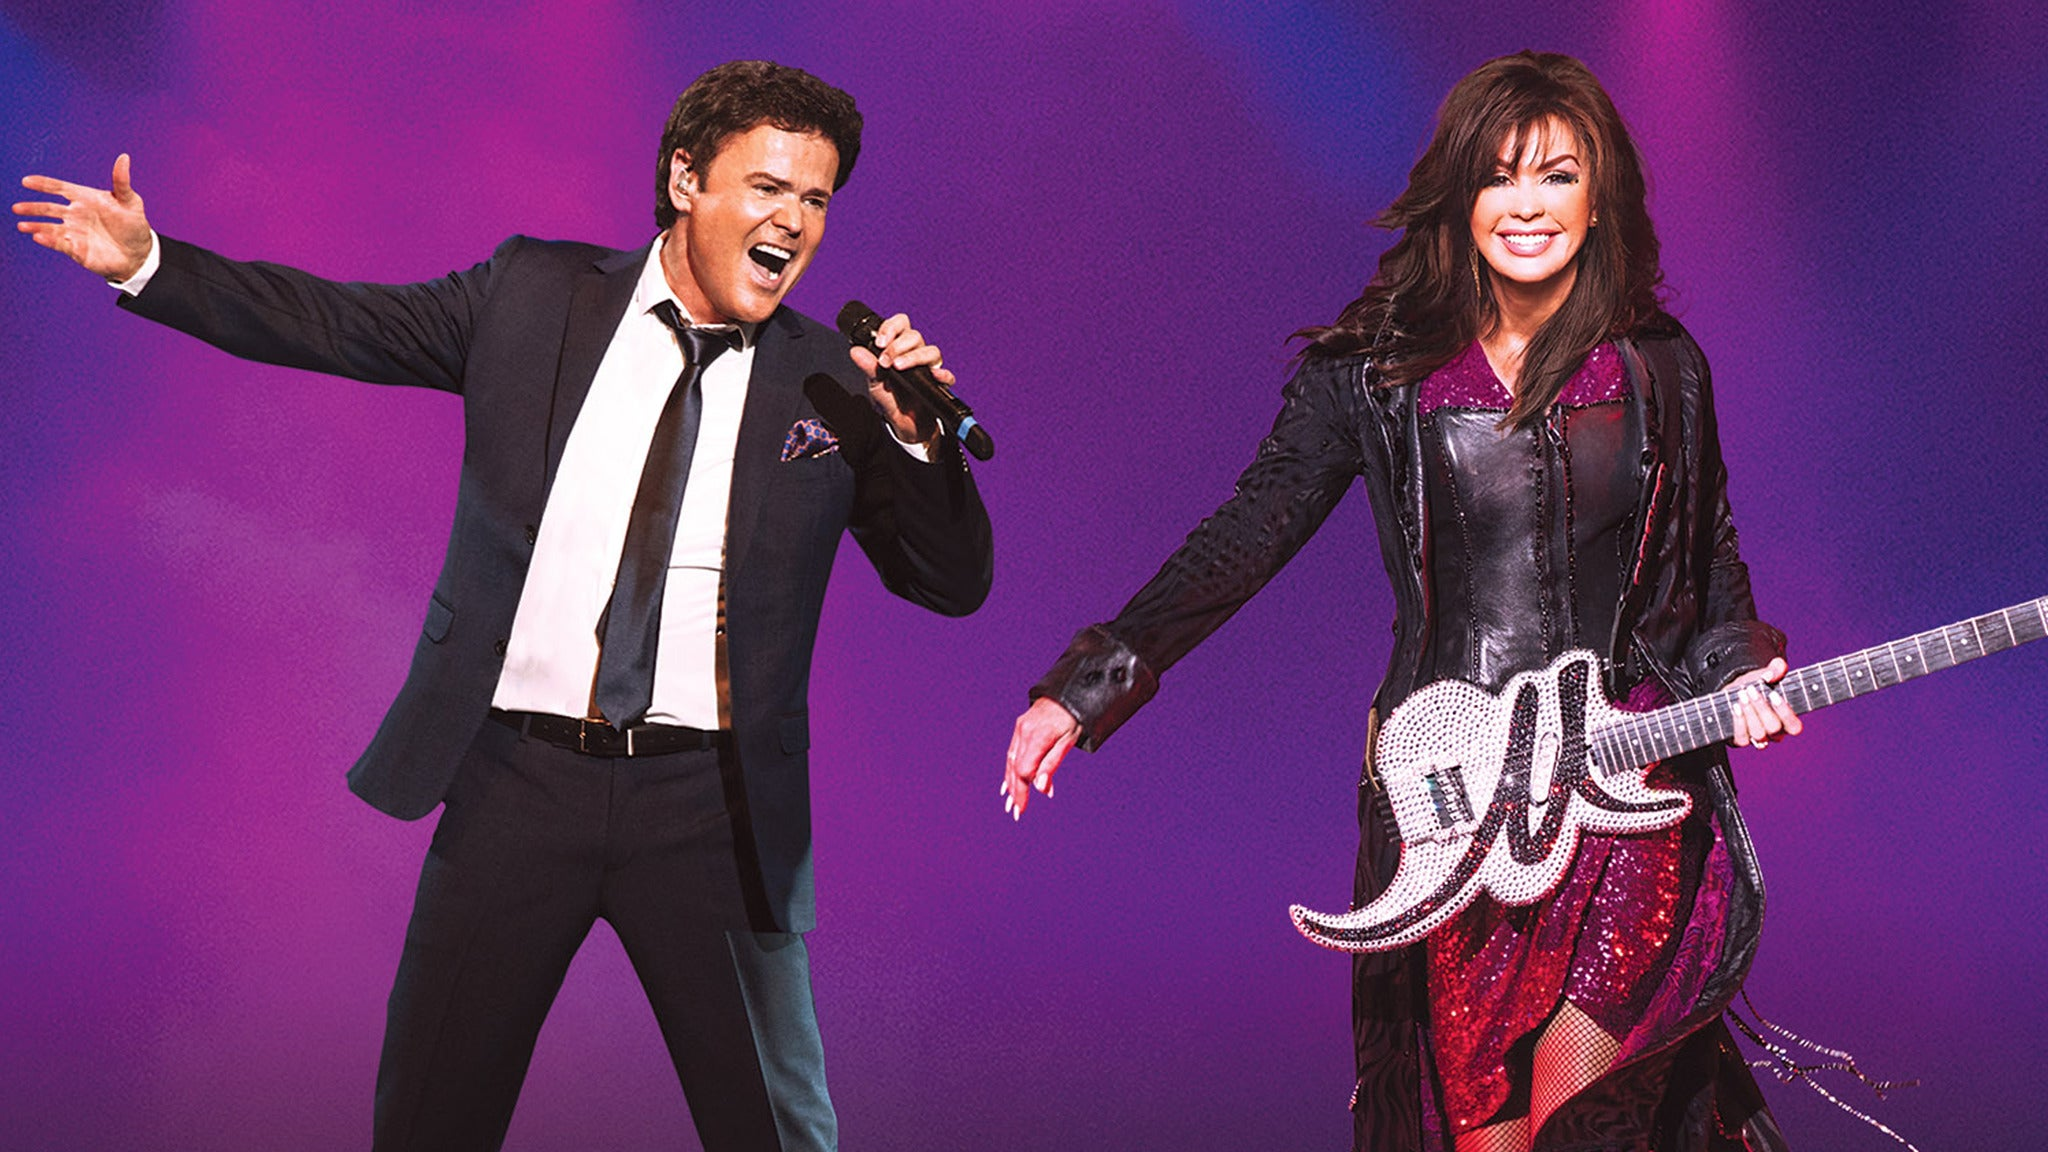 Donny & Marie at Pechanga Resort and Casino